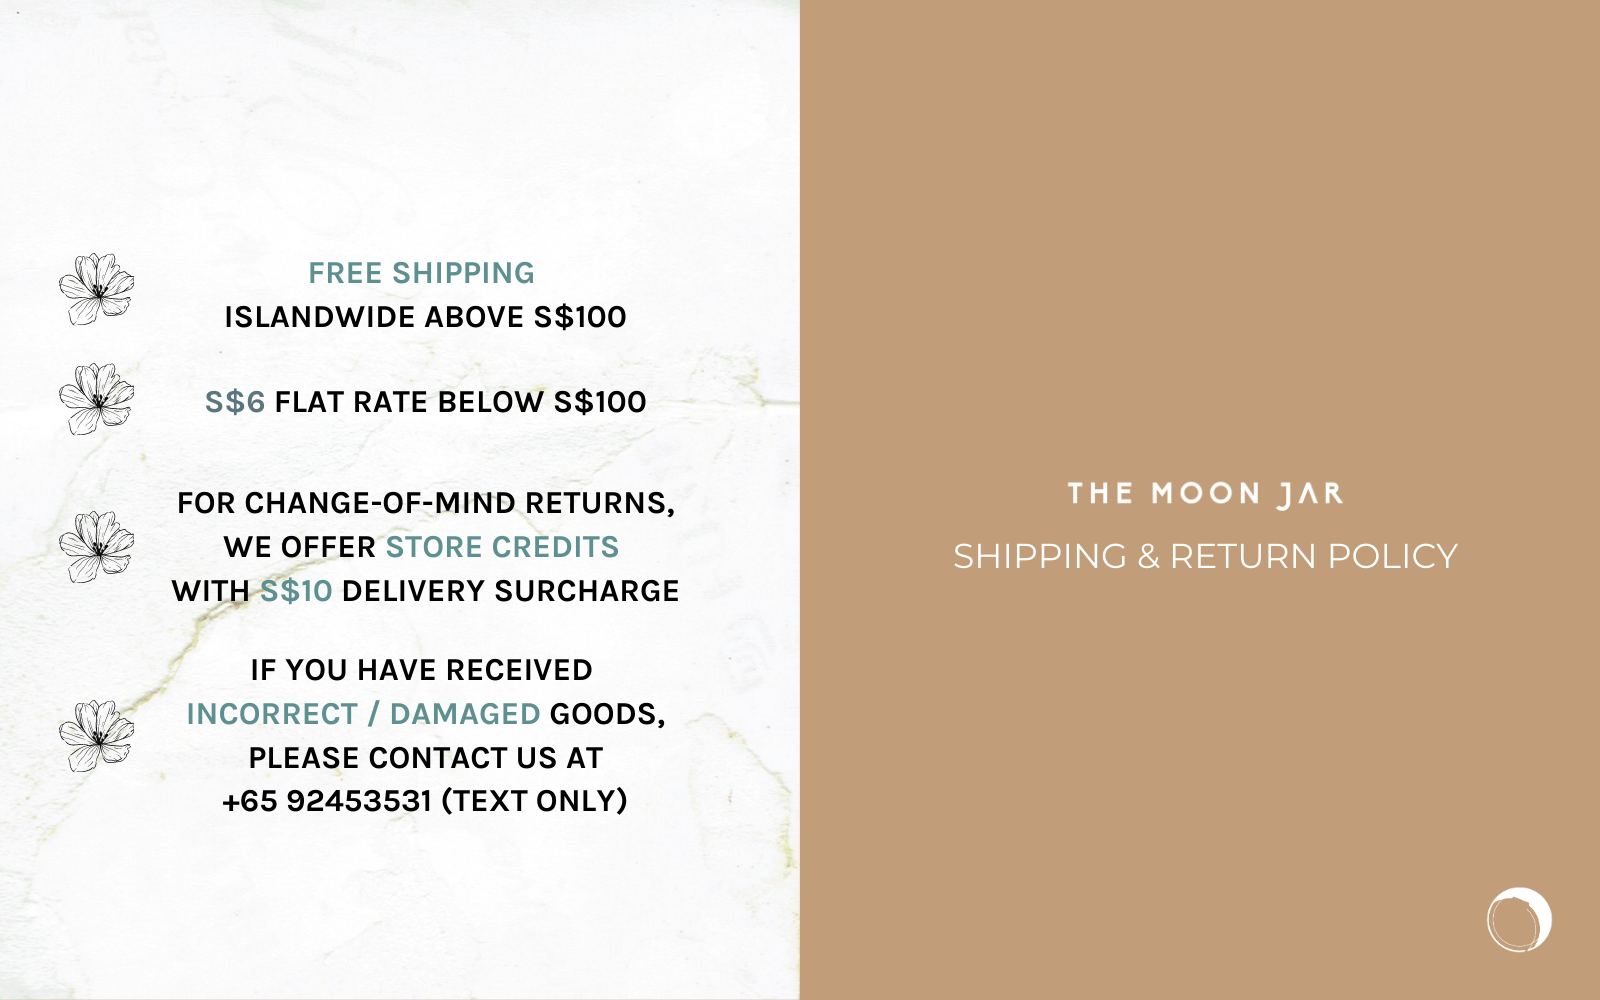 Shipping and return policy of The Moon Jar